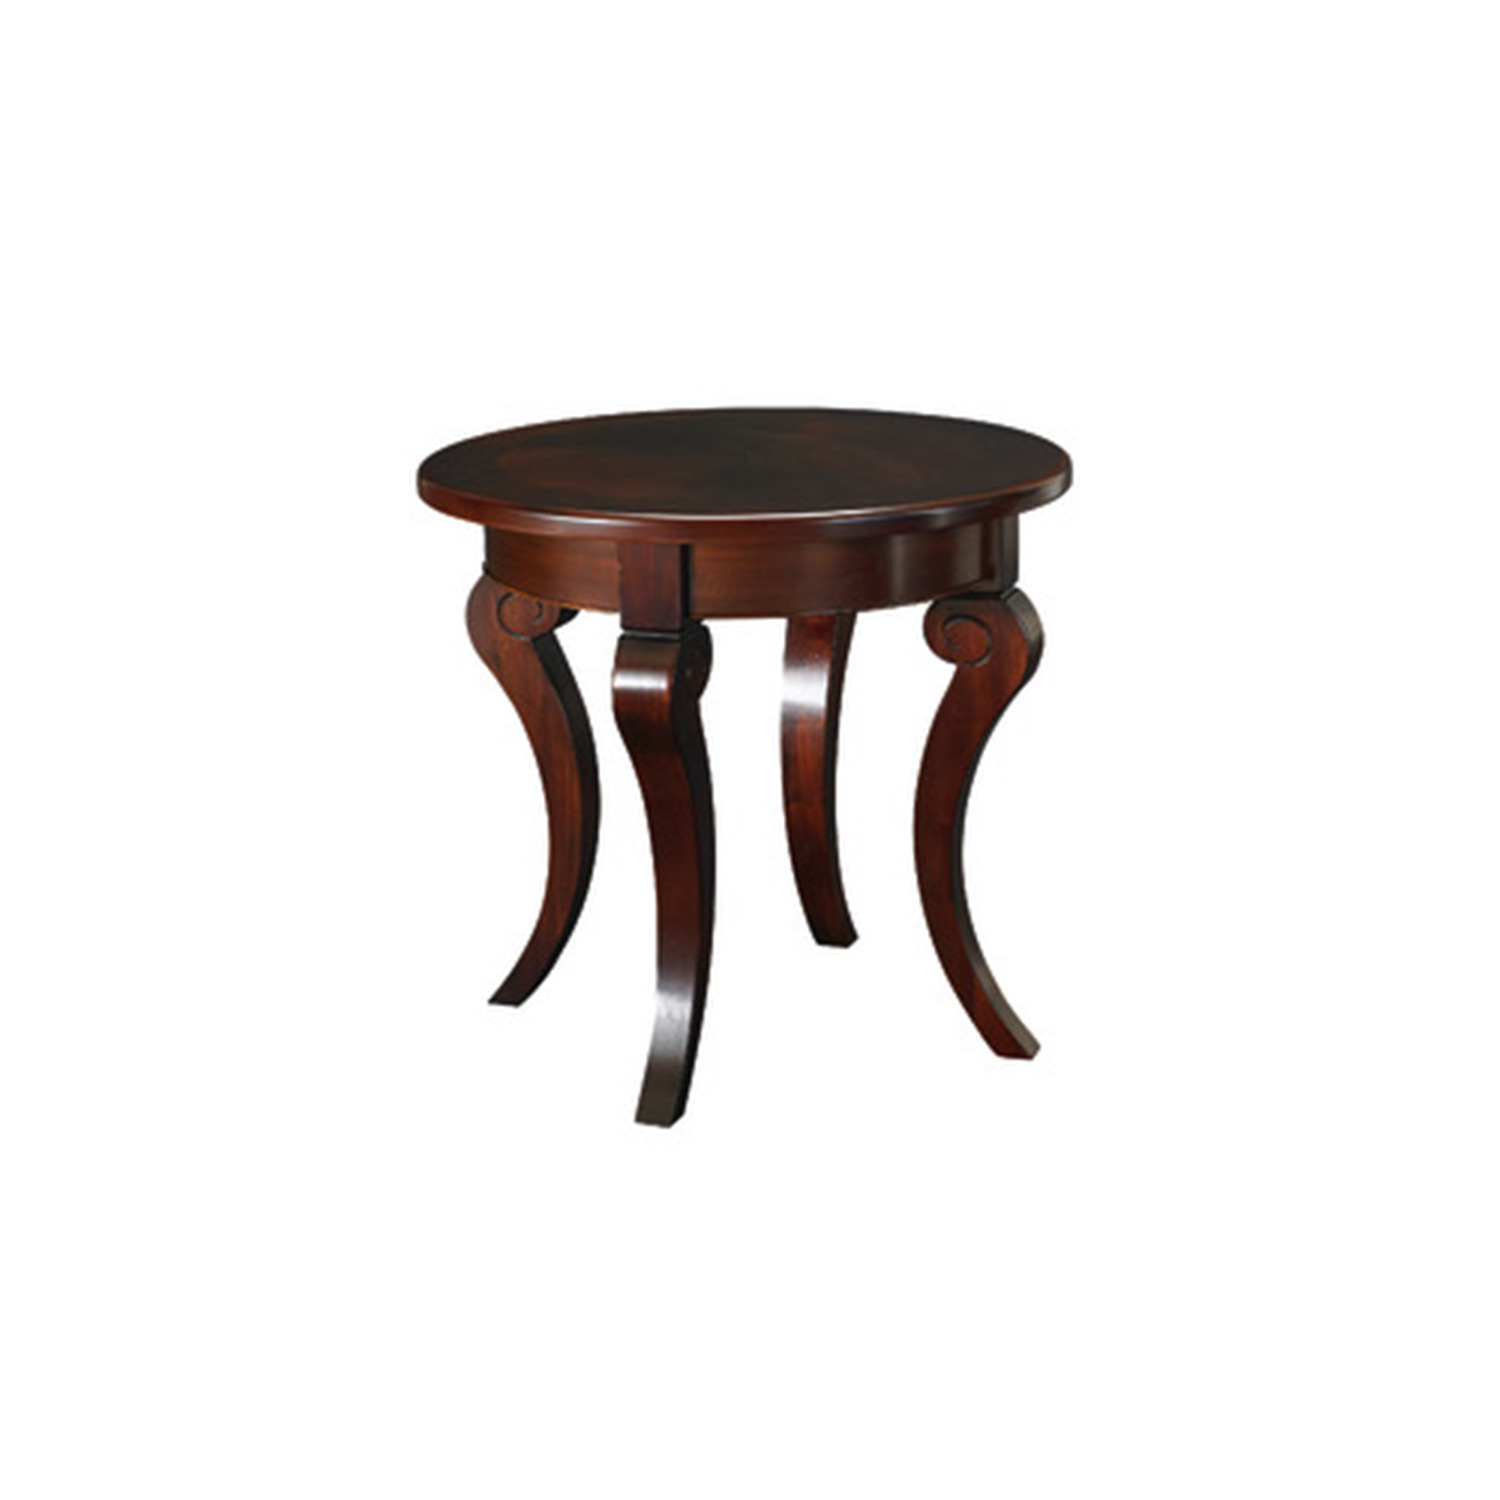 Hammary landon round end table by oj commerce t20240 for Spl table 99 00